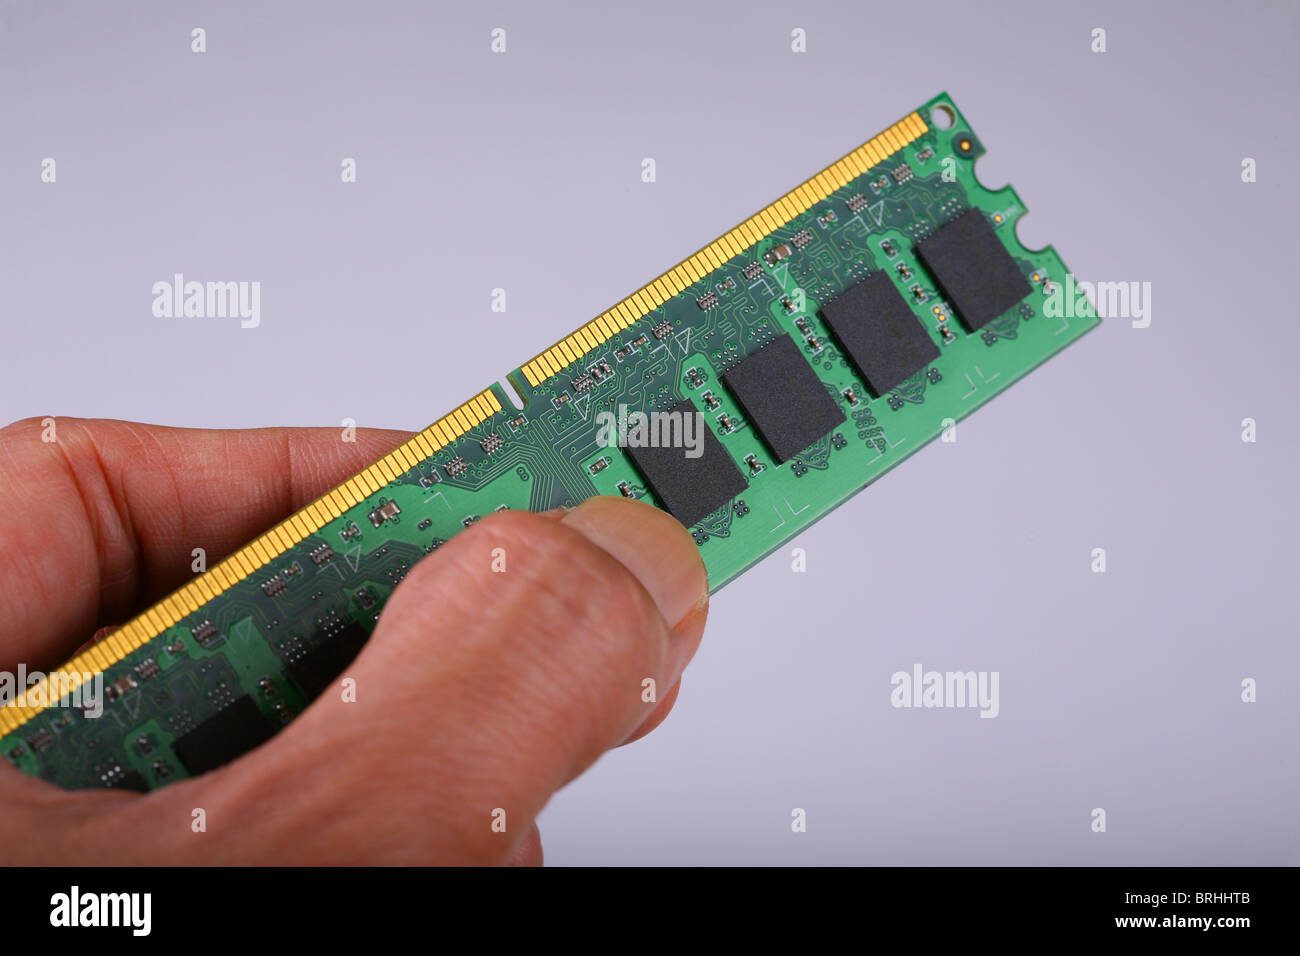 Memory chip - Stock Image